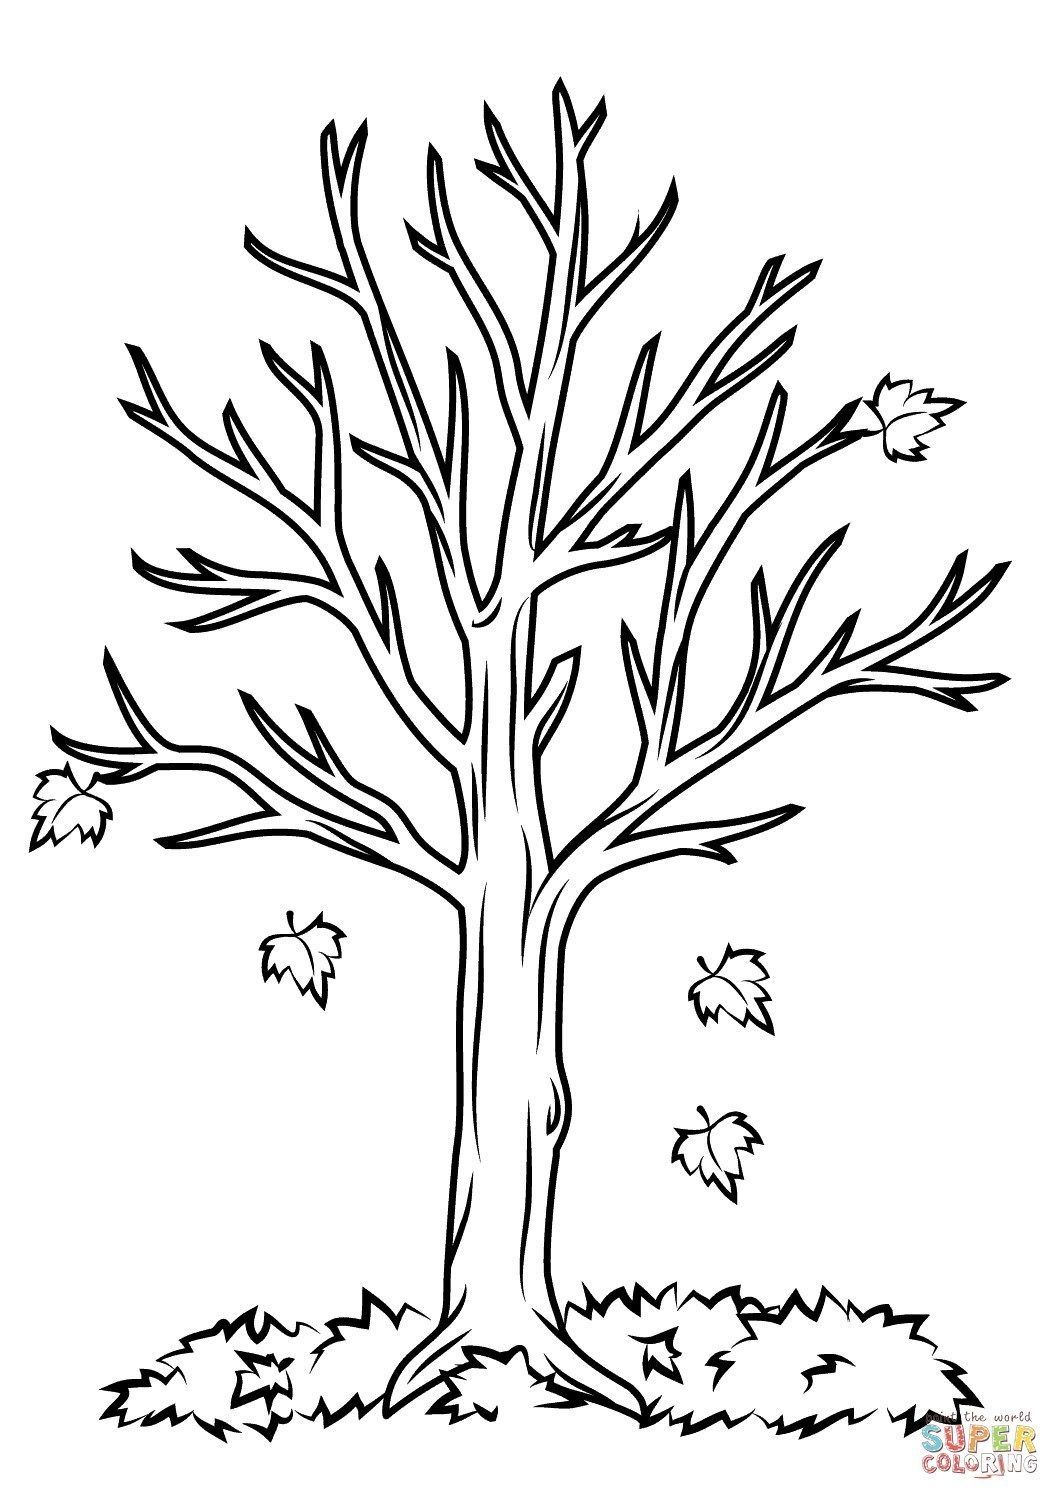 Fall Coloring Pages For Kids Fall Tree Coloring Page Free Printable Coloring Pages Birijus Com Tree Coloring Page Leaf Coloring Page Fall Leaves Coloring Pages